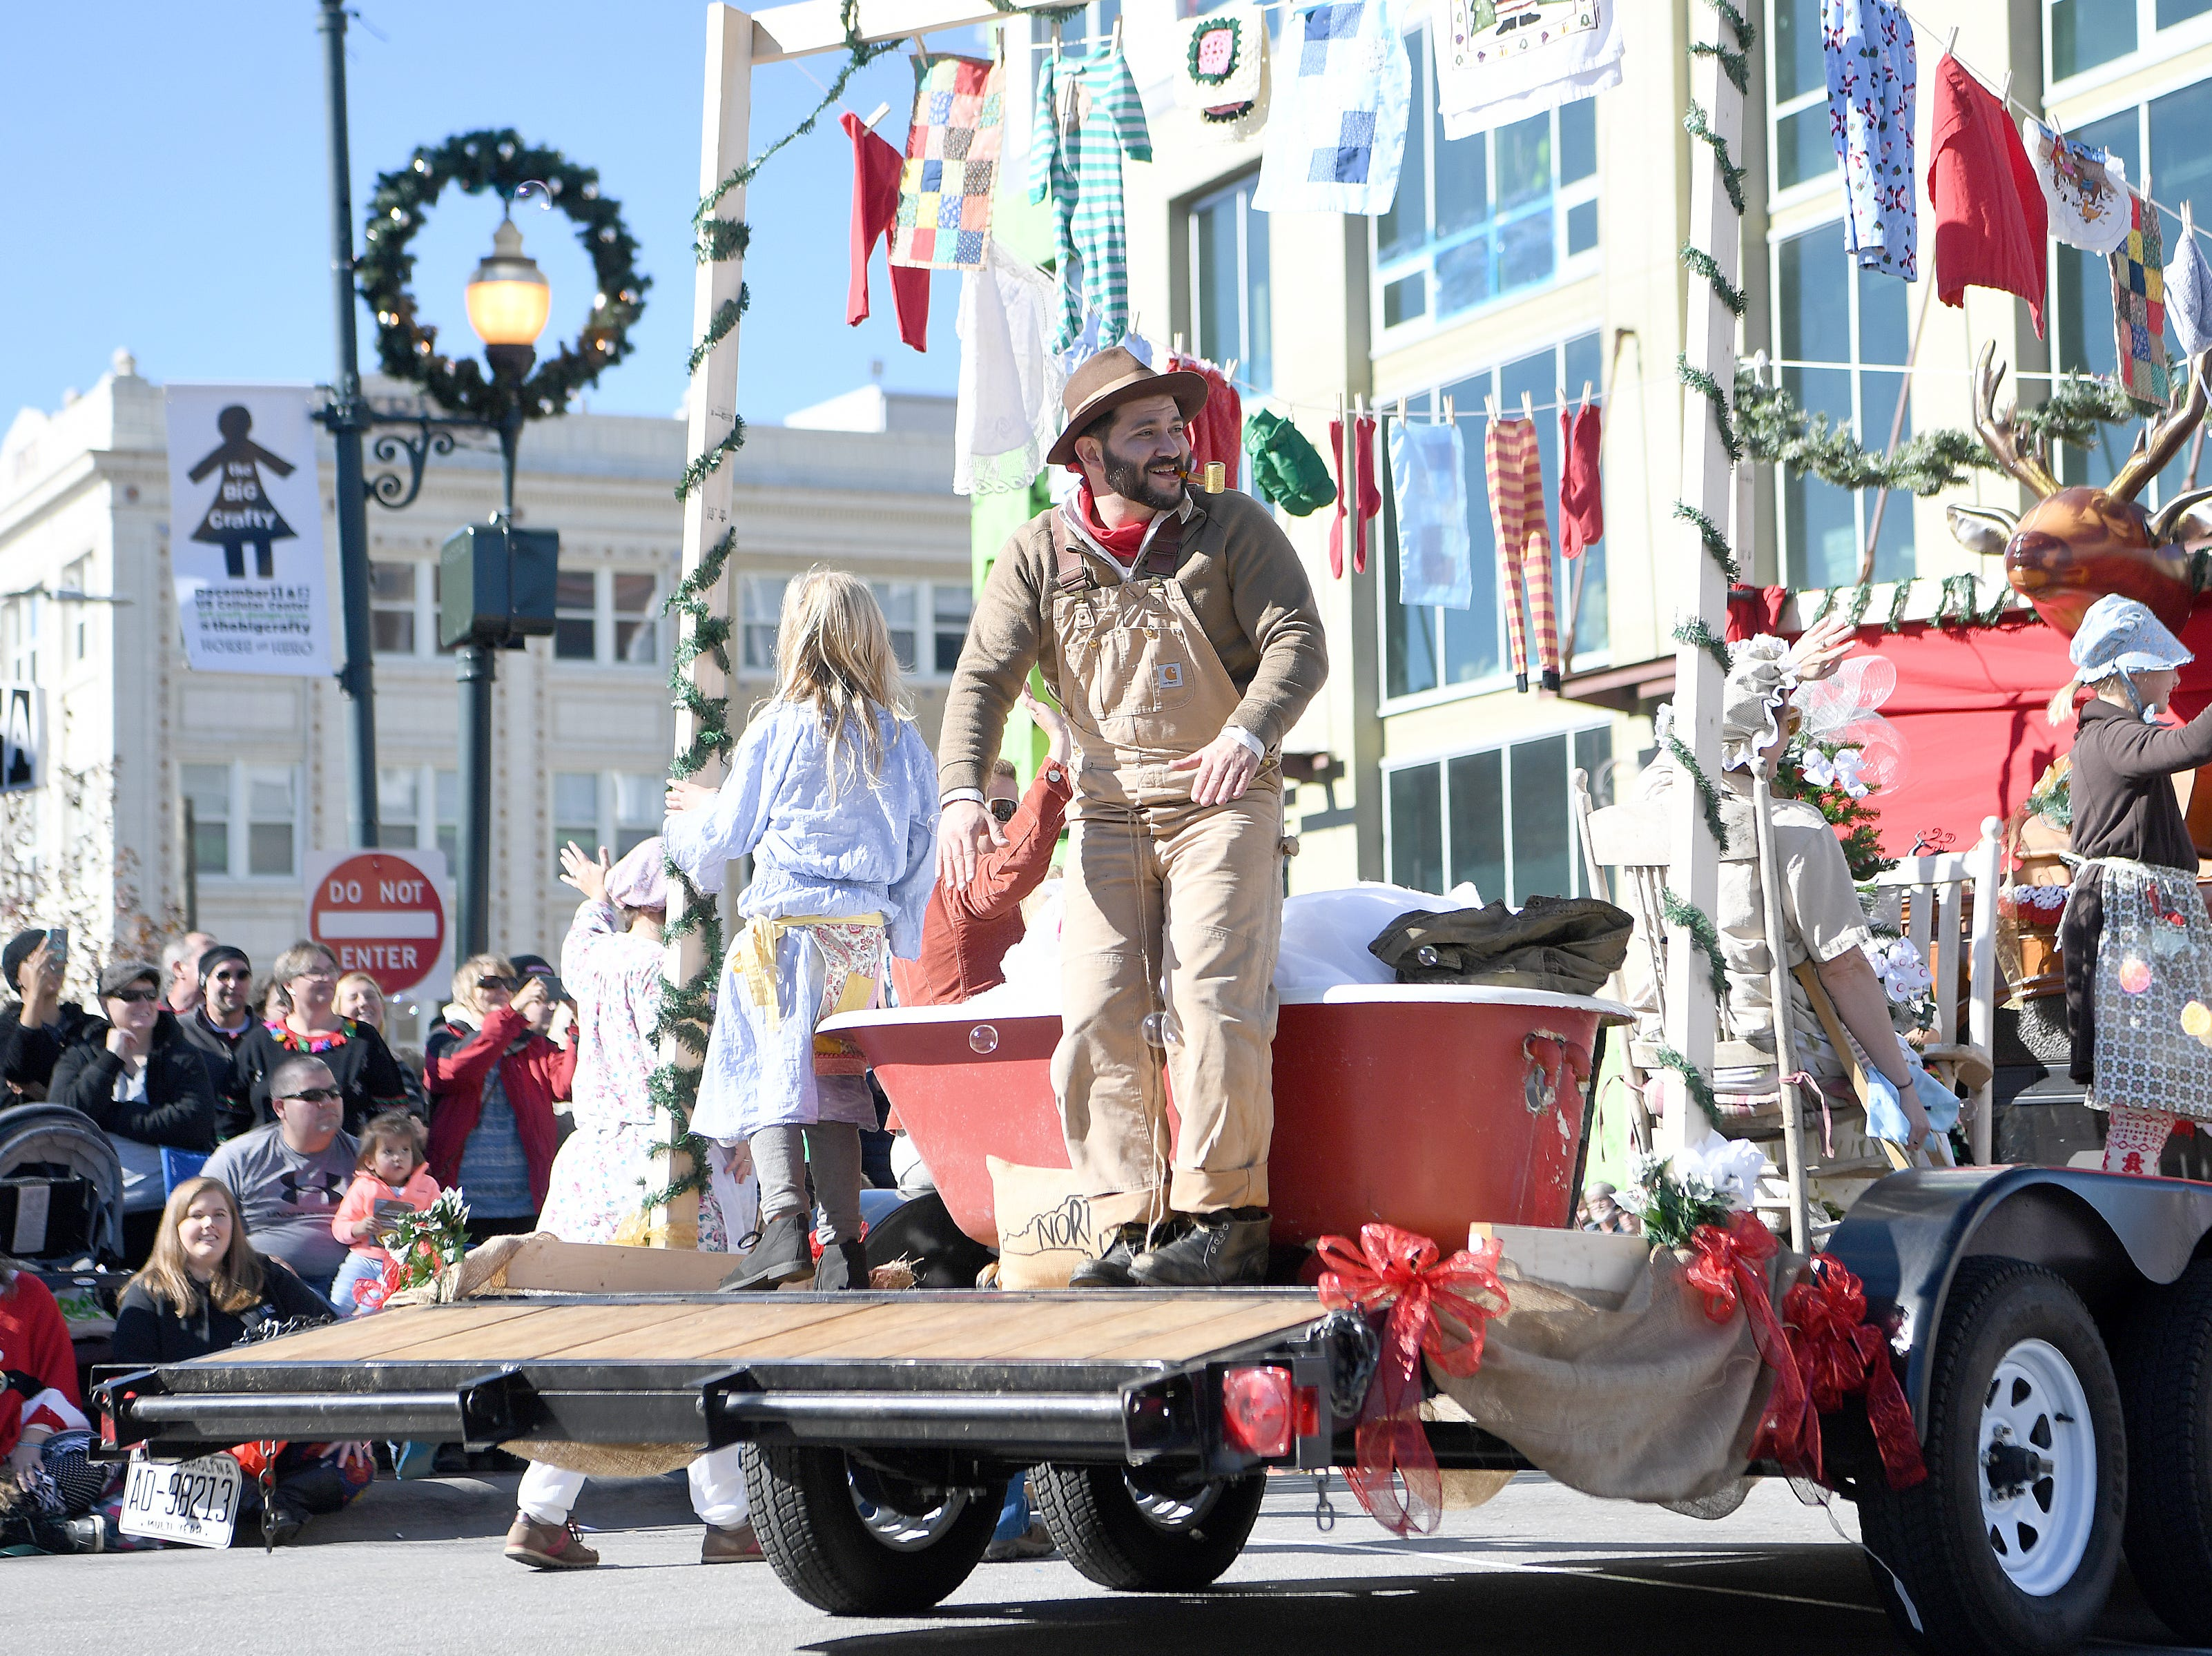 More than 100 entries walked the streets of downtown packed with spectators in the 2018 Asheville Holiday Parade on Nov. 17, 2018.